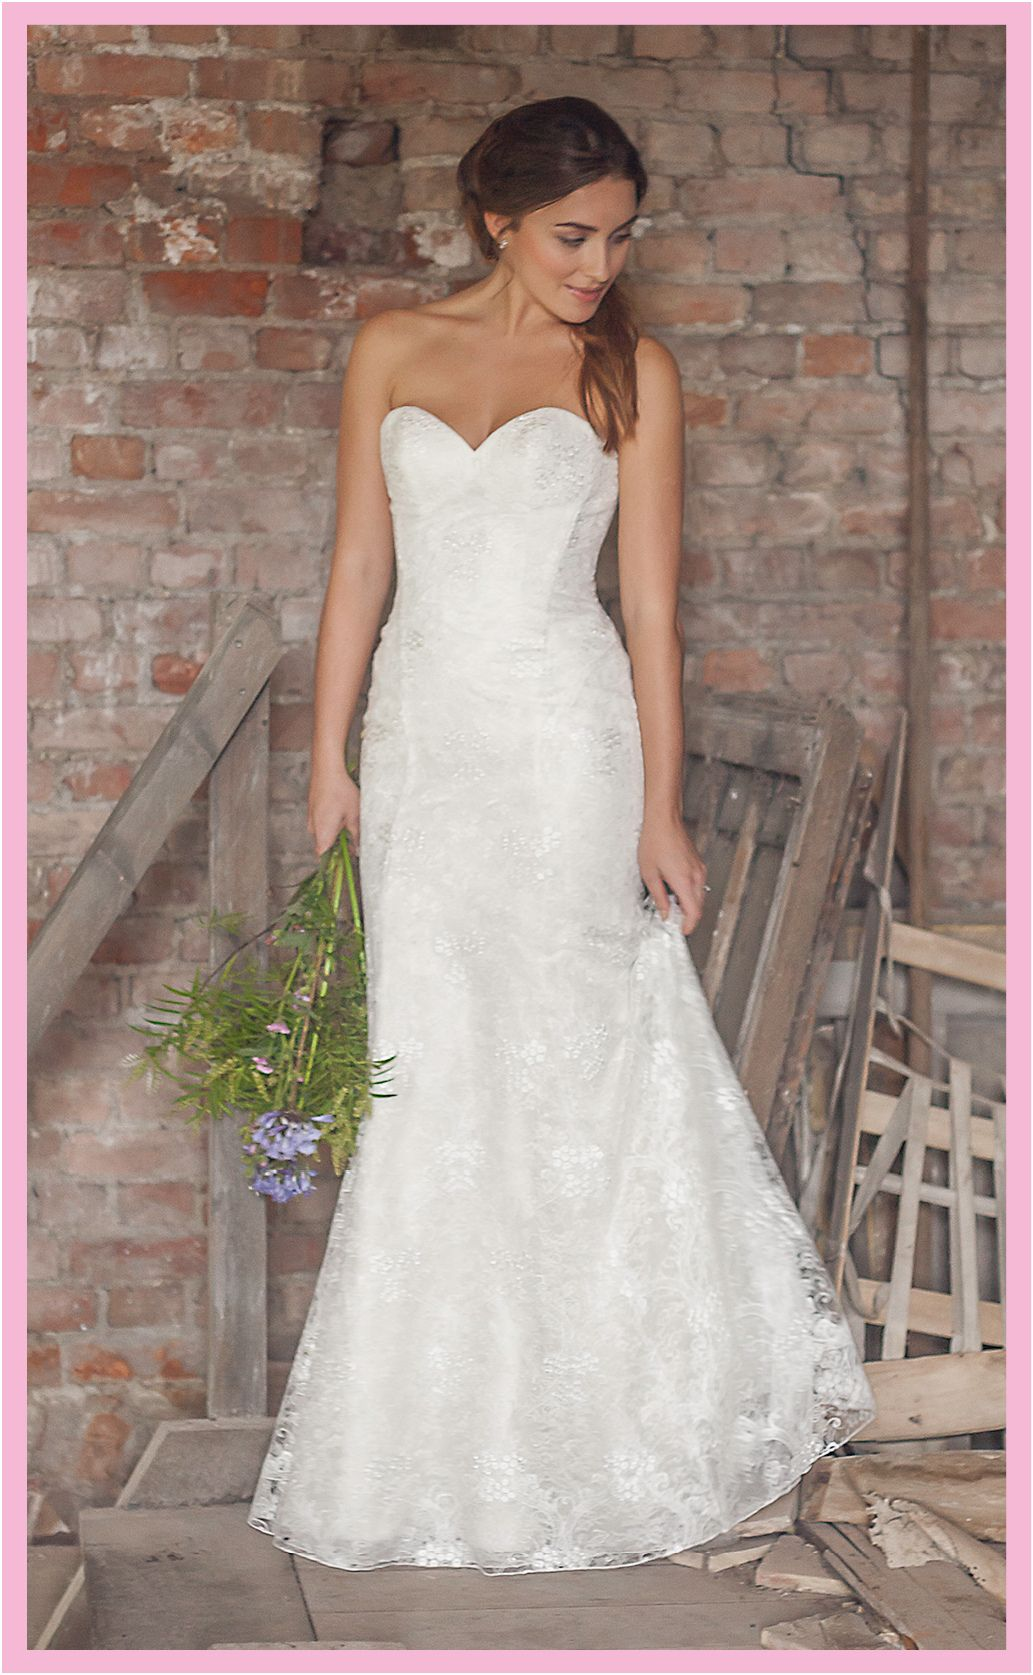 99 British Wedding Dress Designers How To For A Check More At